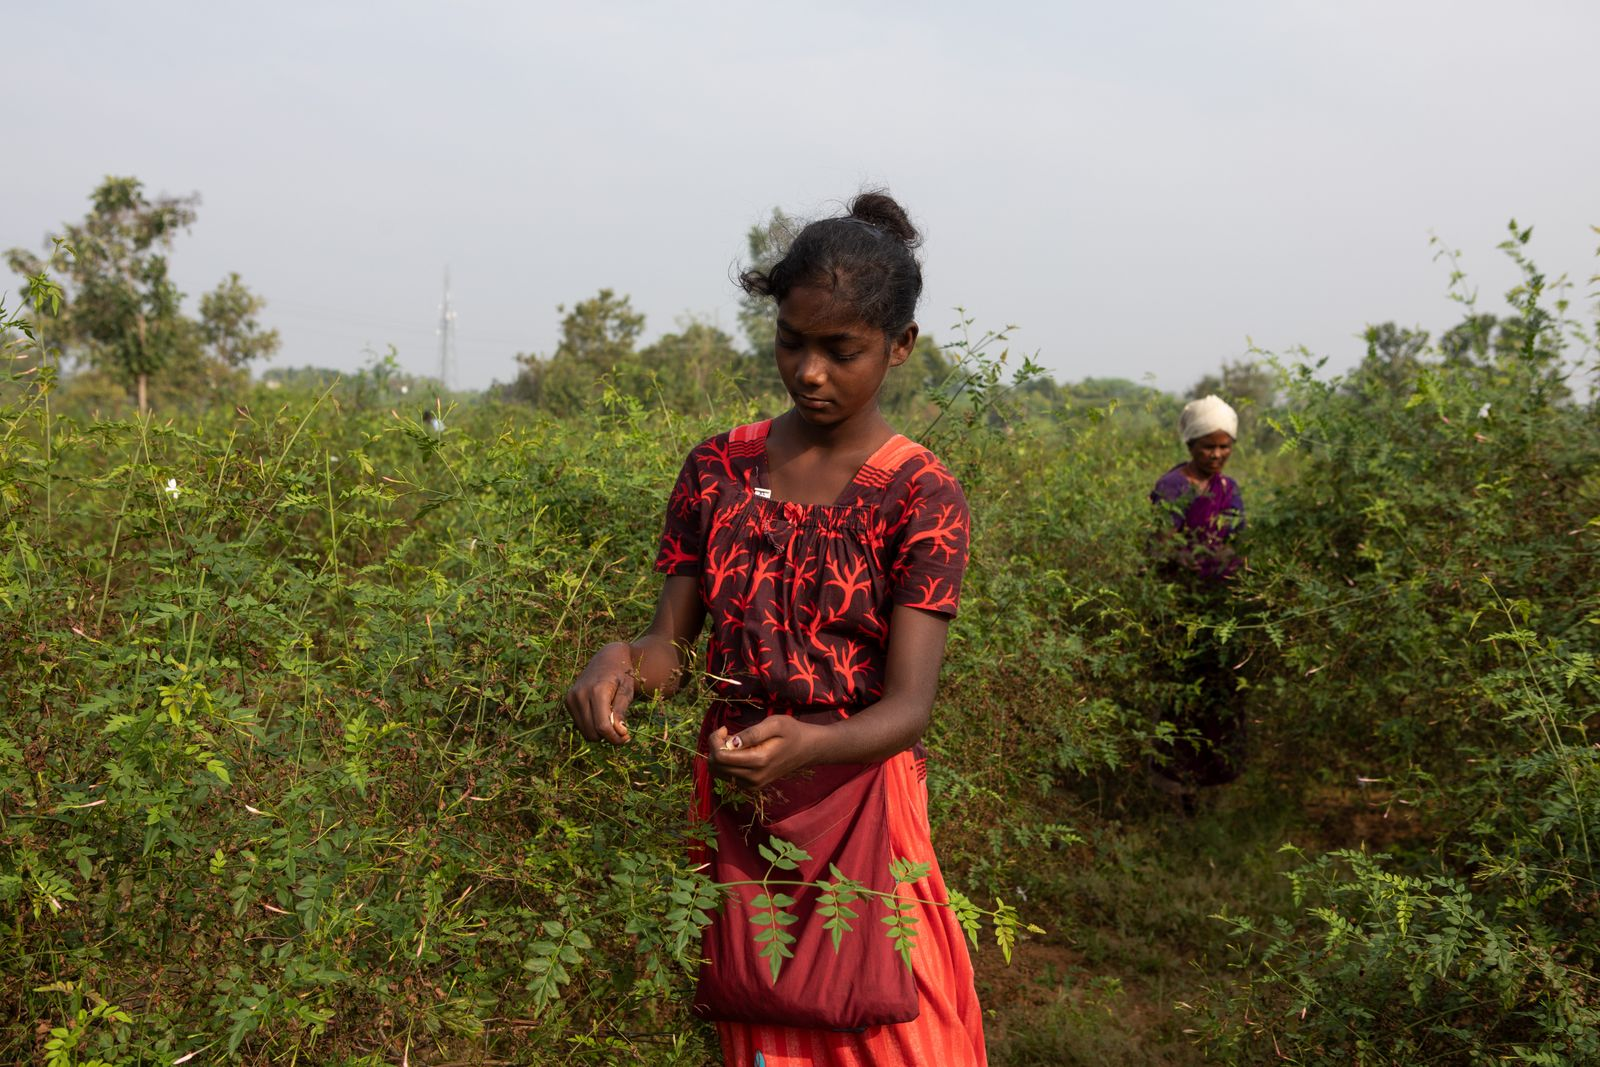 13th Jan 2021, Thalavedu village, Tiruttani Thaluk,Thiruvallur district in Tamil Nadu, India. Mythali, 13, helps out her father Sukumar at his farm in the mornings before school. But due to covid 19, schools have been shut and they do not have online classes either. So now they tend to work for longer hours usually 6 am to 11 am. Small farmer families often need the extra pair of hands and mobilise their own children to save on costs. Farmers who apply pesticides do so with little or no protective clothing. They spray toxic chemicals wearing only a traditional wraparound (lungi). This lack of adequate protection extends to children, who aside from plucking flowers, reported sometimes preparing/ mixing pesticides and mixing pesticides with their bare hands. Some of the symtoms expericenced by the children and their parents due to the pesticides were dizziness, headache, skin rashes, fatigue, and breathing problems. Photographer: Samyukta Lakshmi.